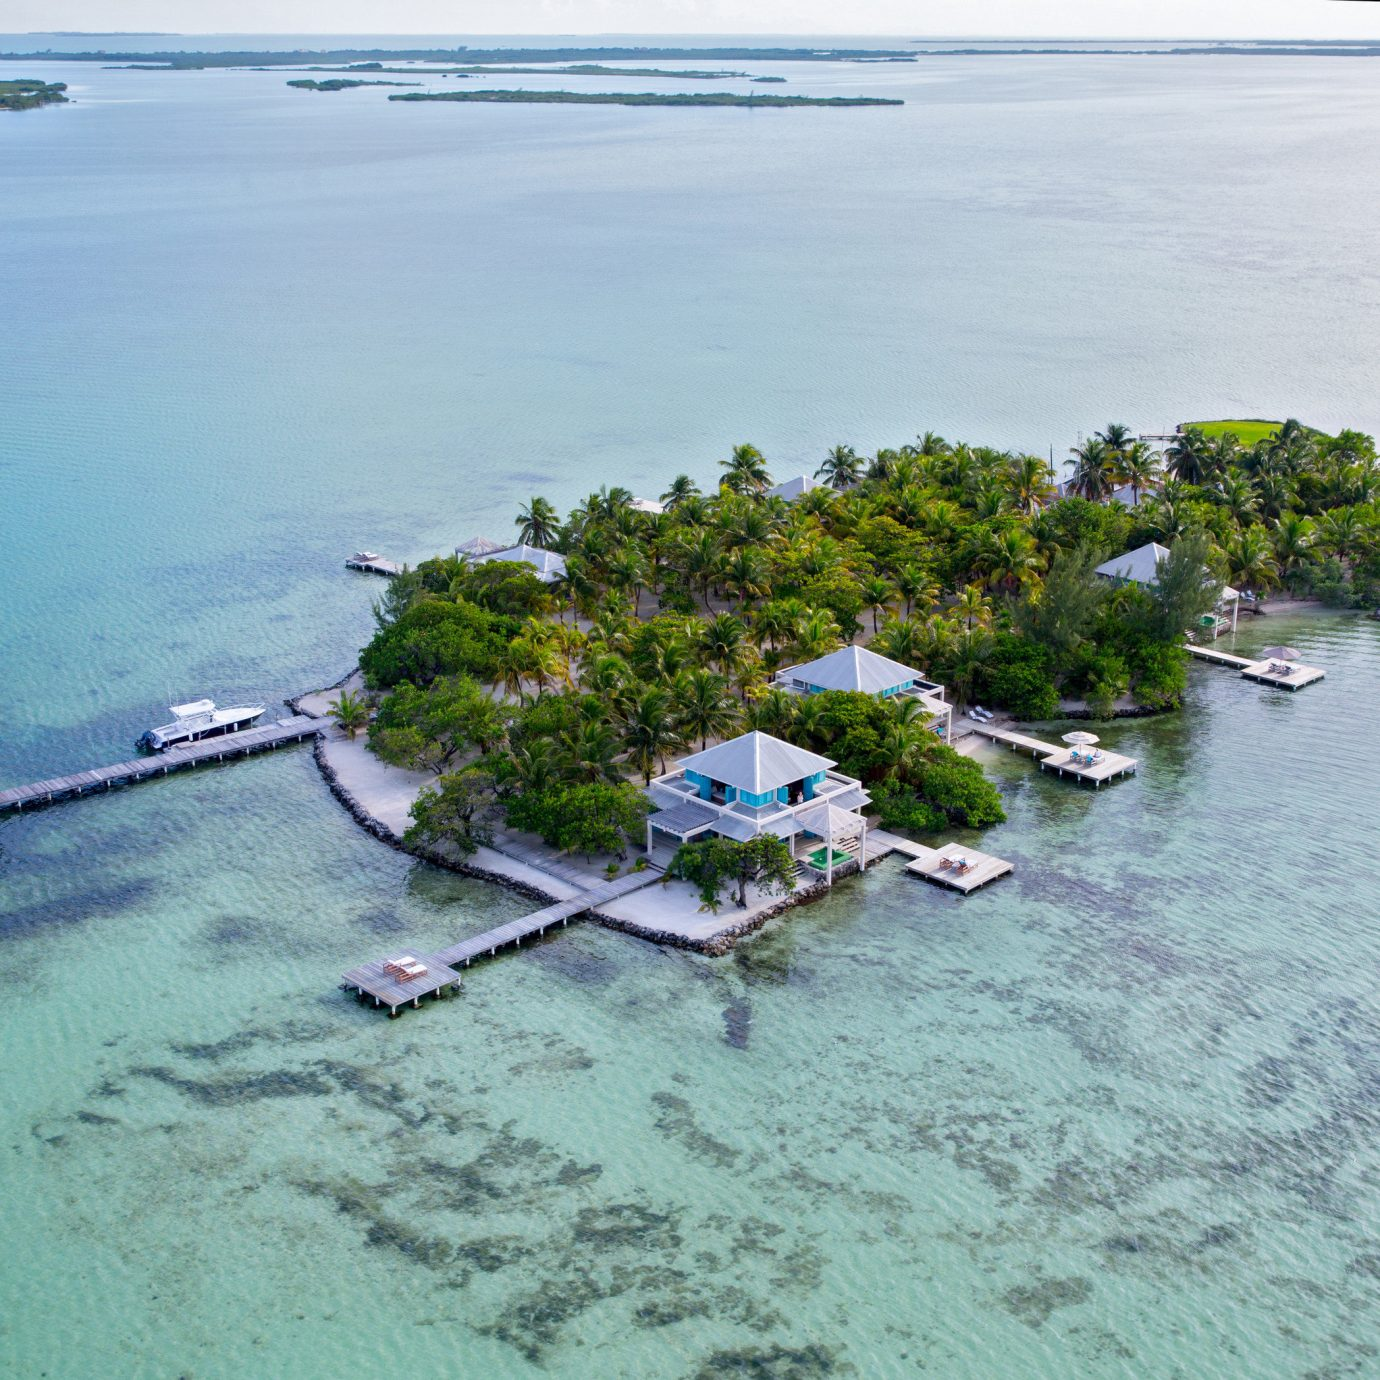 Island with Cayo Espanto Resort